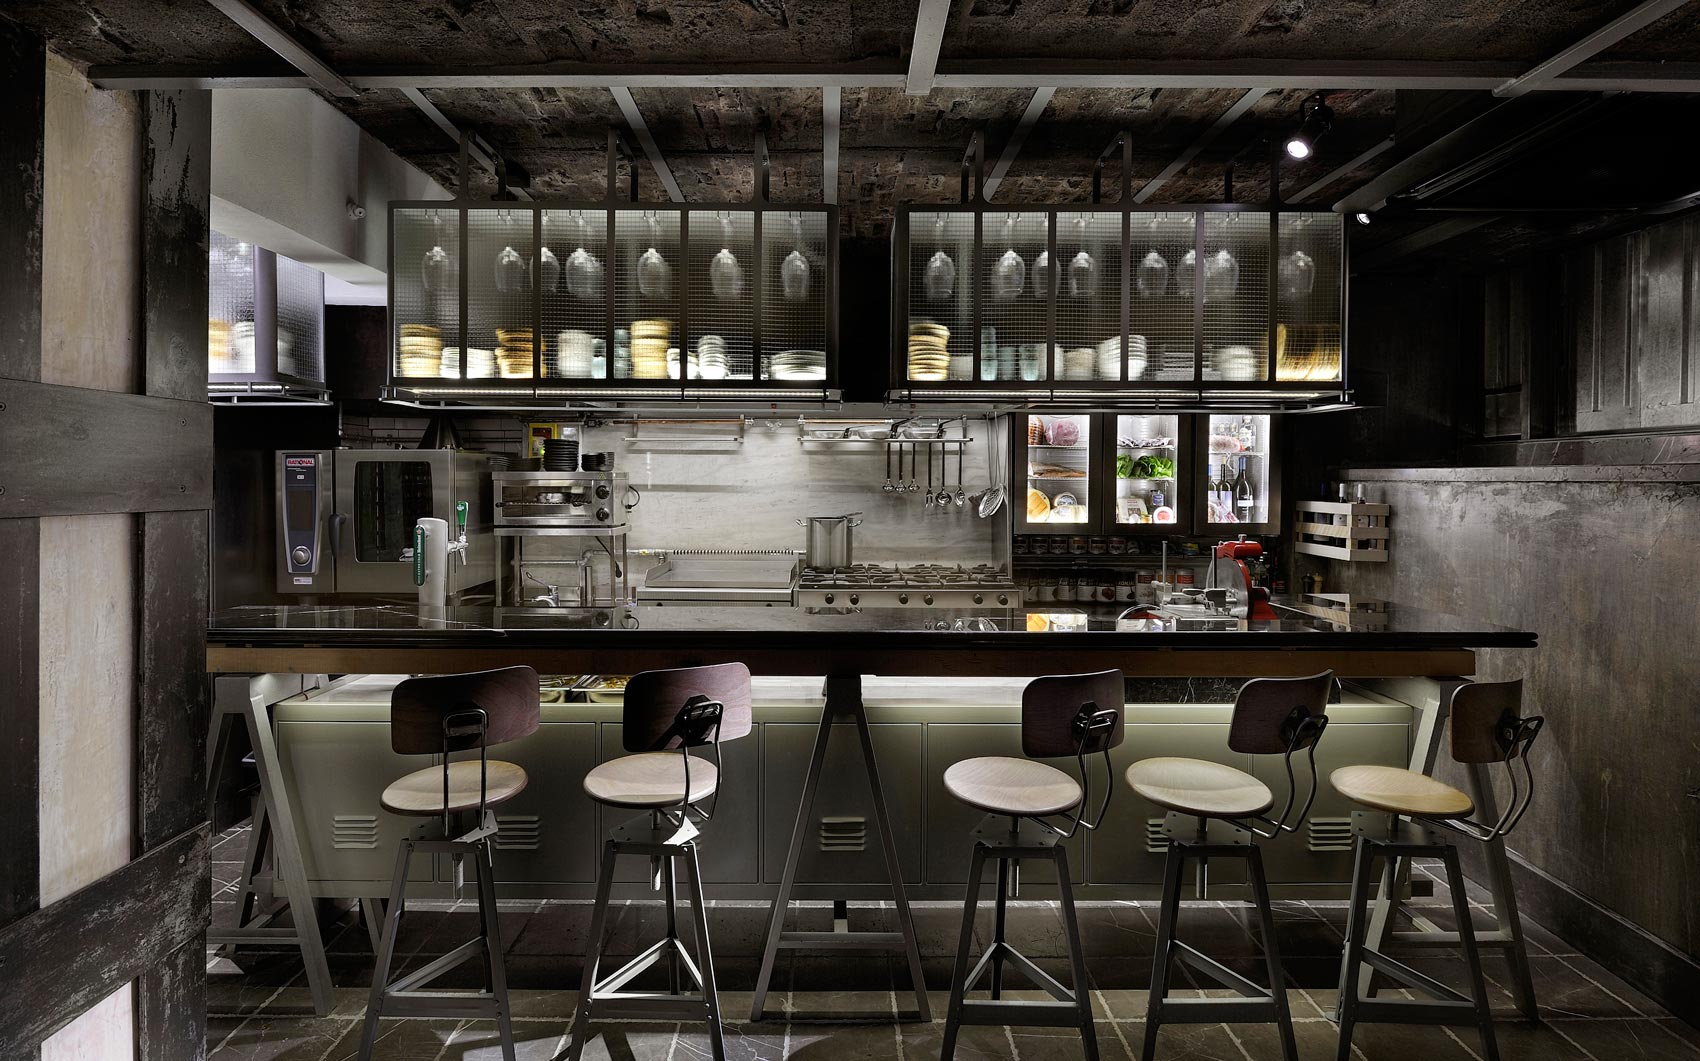 Local espresso bar and restaurant by Karalasos Operaday Architects